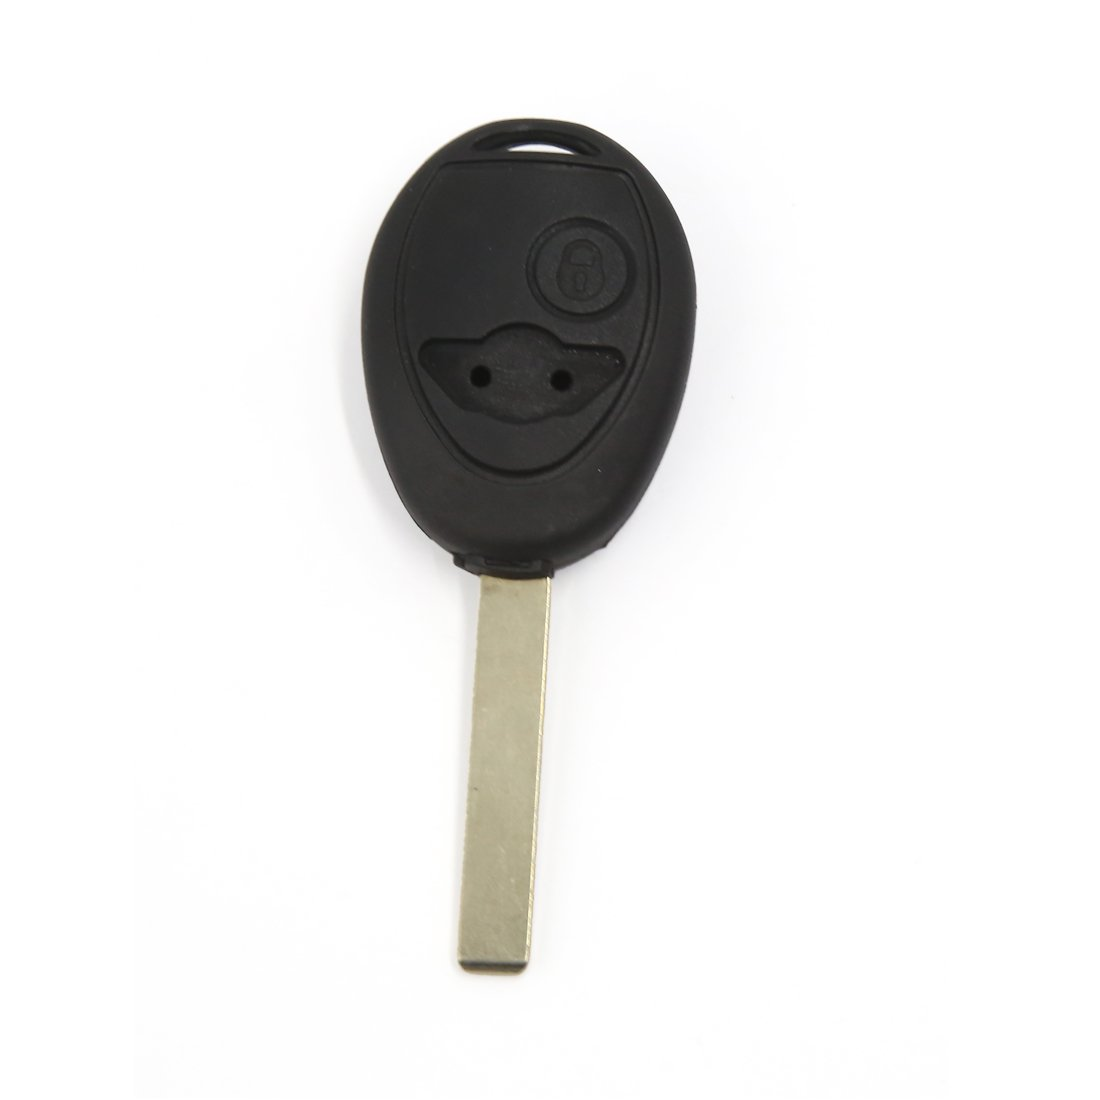 uxcell NEW Black 2 Button Keyless Entry Remote Key Fob Case Shell Uncut Blade for BMW